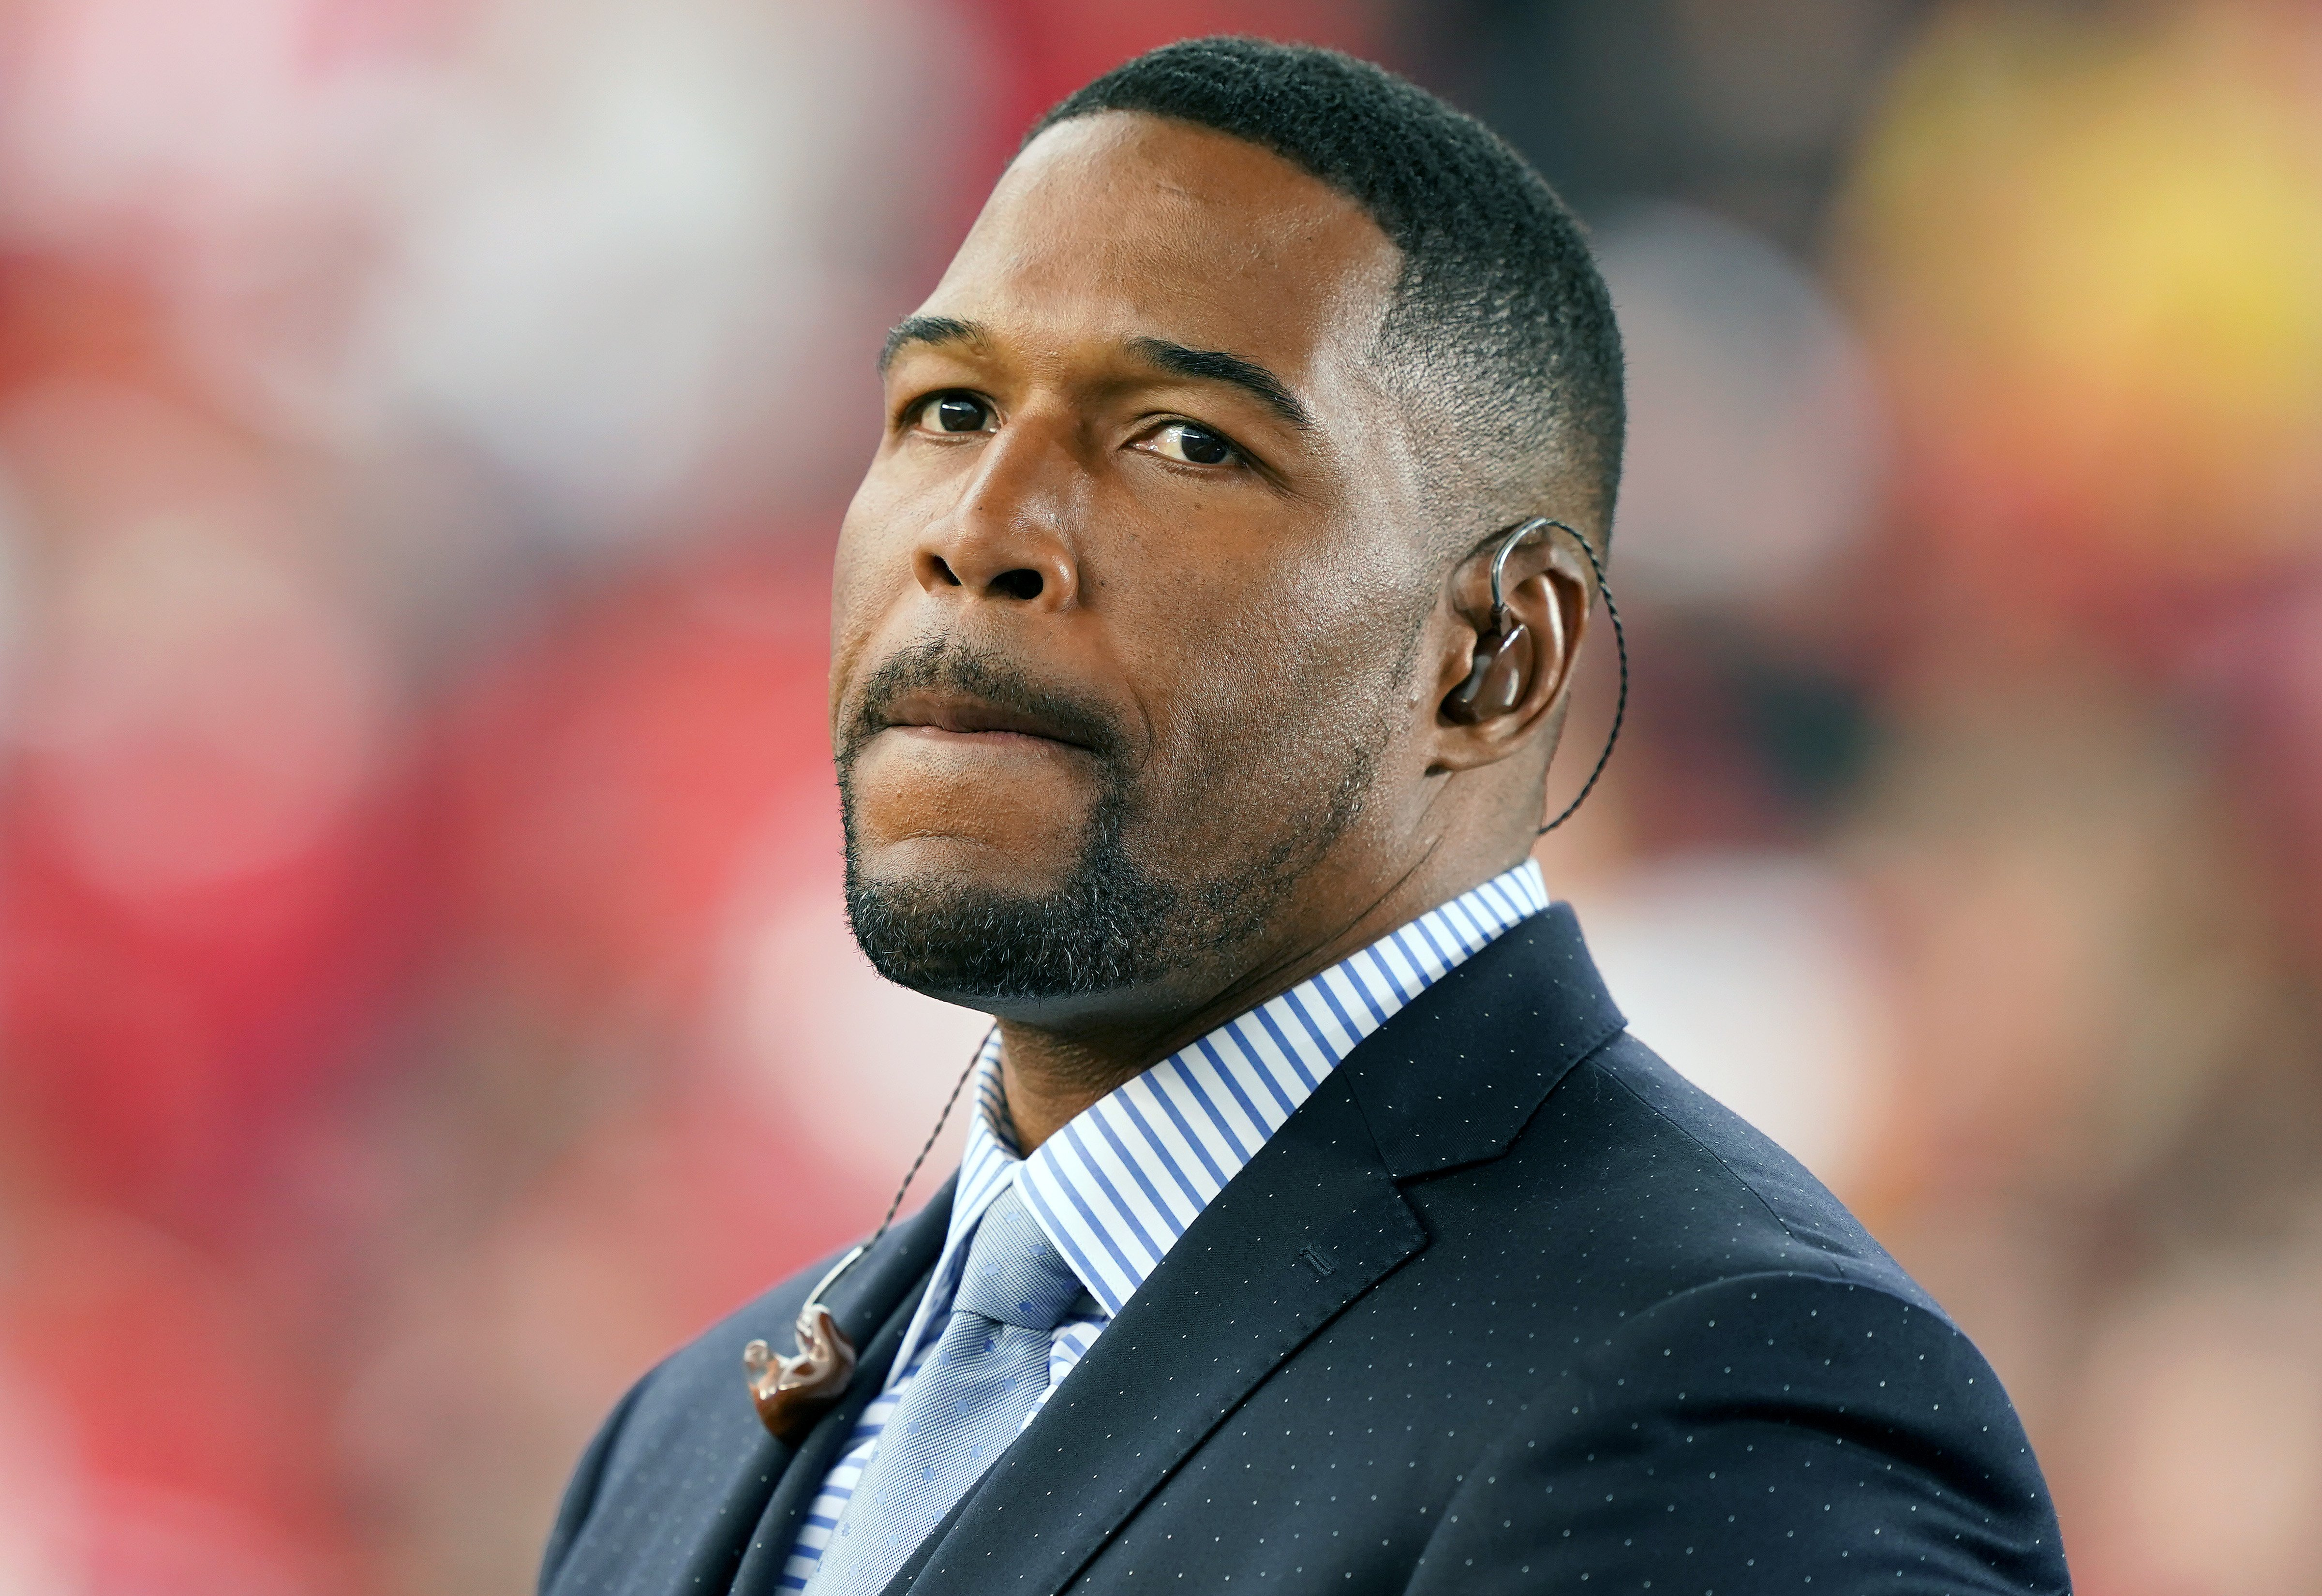 Michael Strahan at the NFC Championship game between the San Francisco 49ers and the Green Bay Packers in January 2020  | Photo: Getty Images